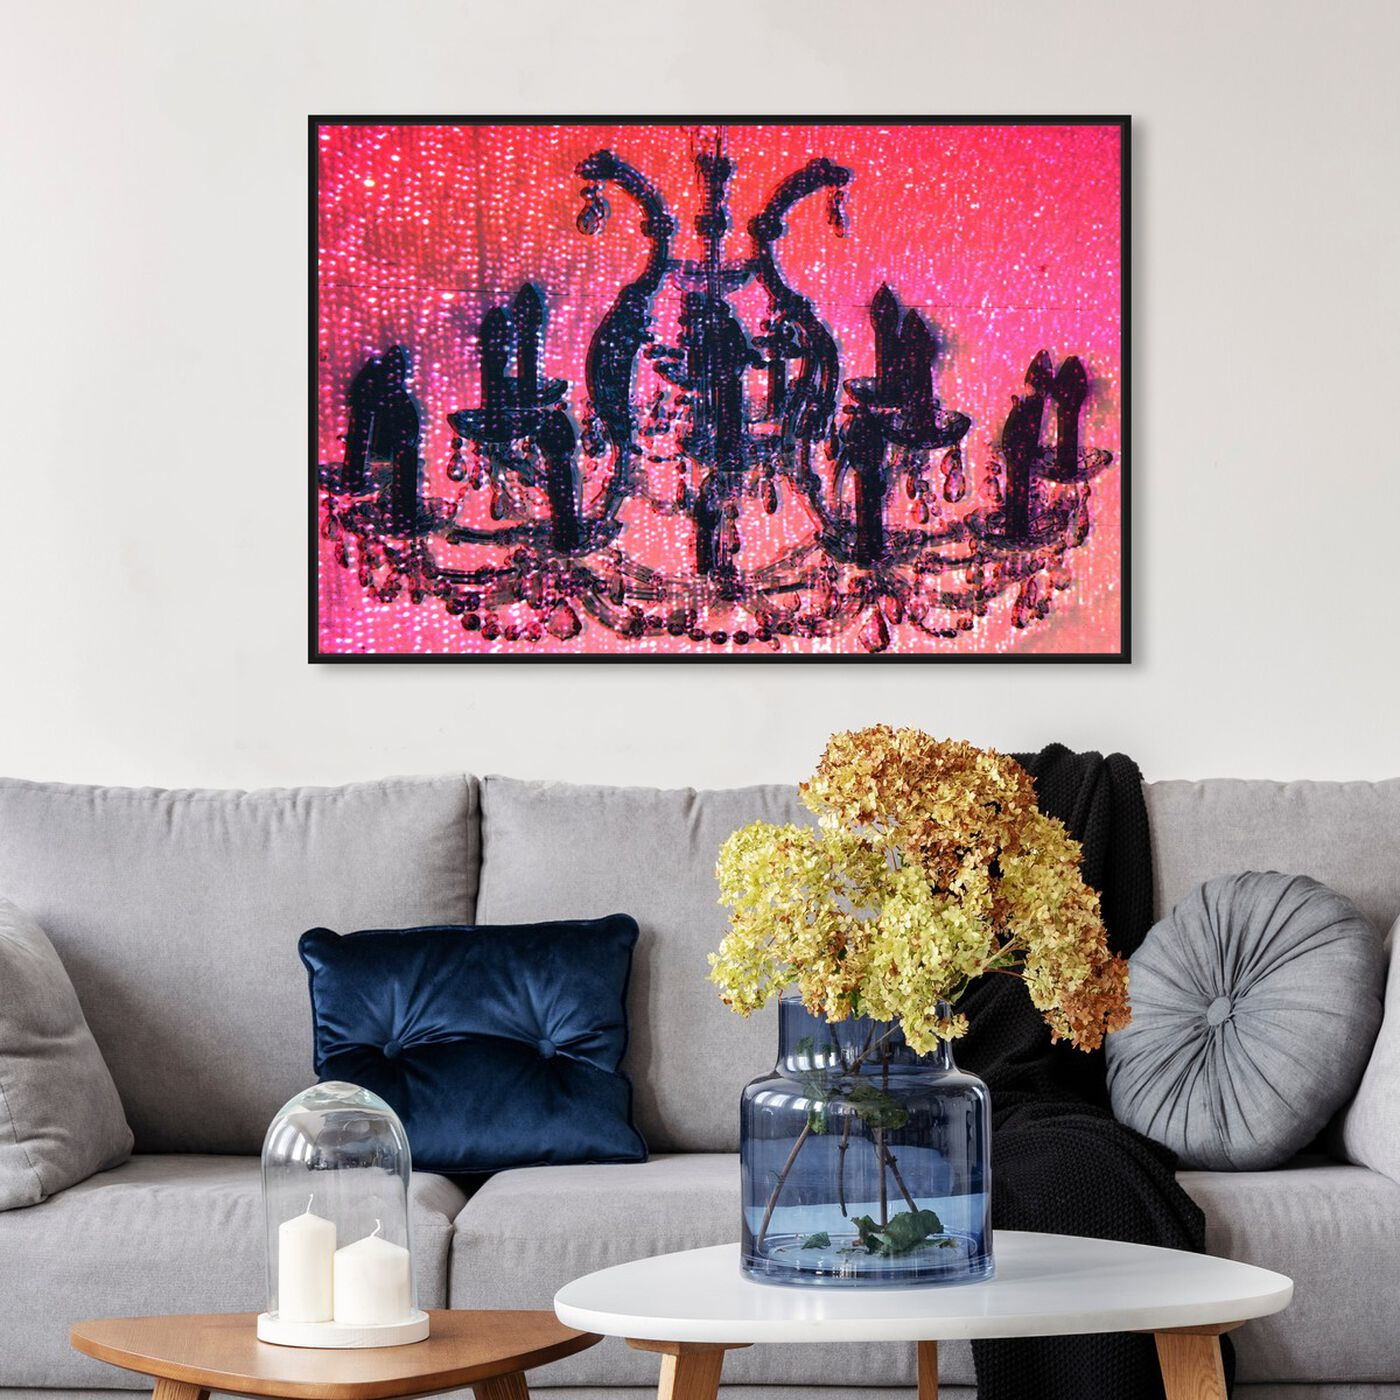 Hanging view of Diamond Burst featuring fashion and glam and chandeliers art.